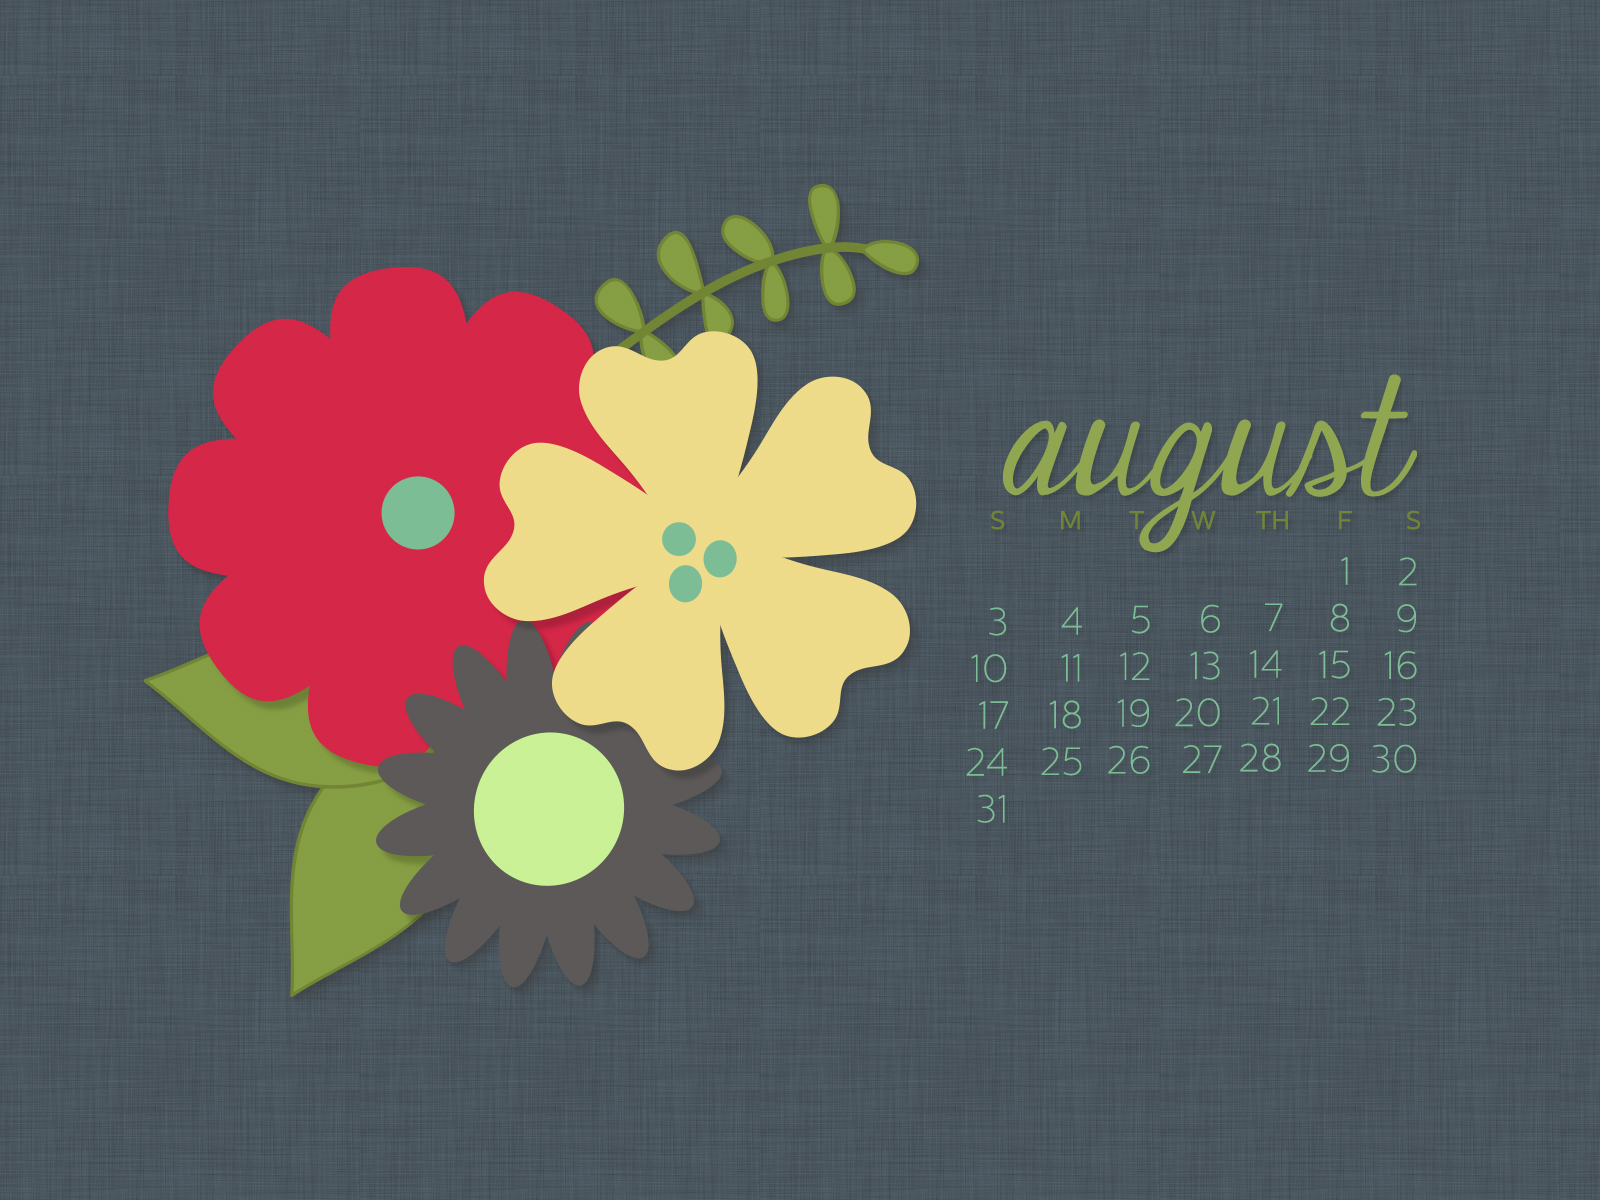 free august 2014 desktop background wallpaper download calendar simplybrenna